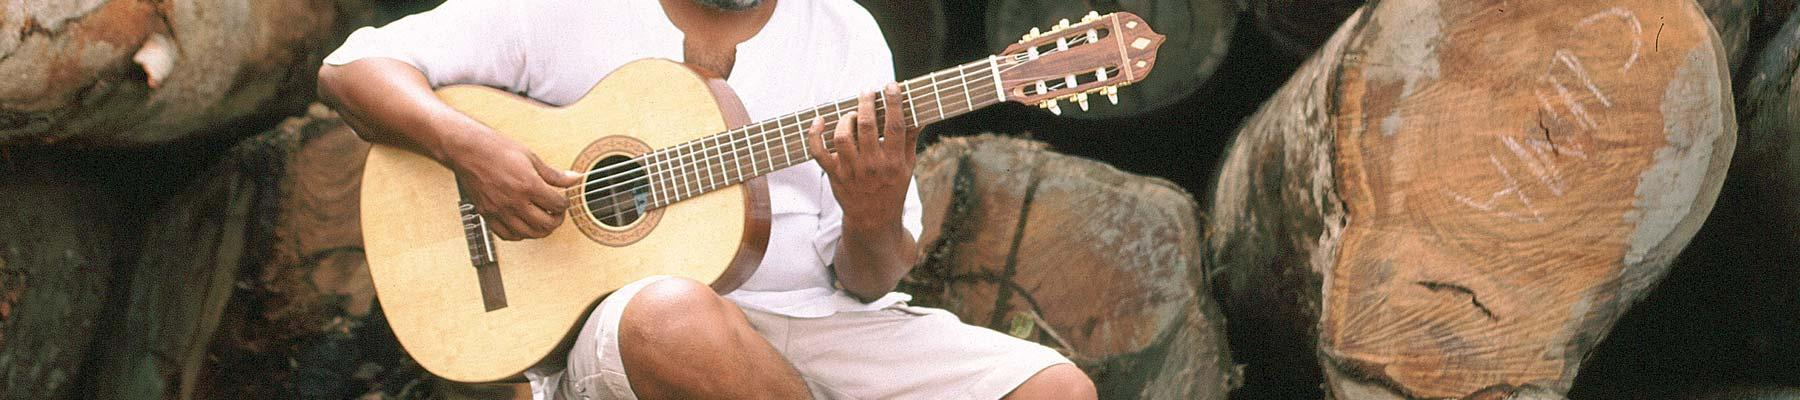 Guitar made from certified timber in Brazil © Edward Parker / WWF